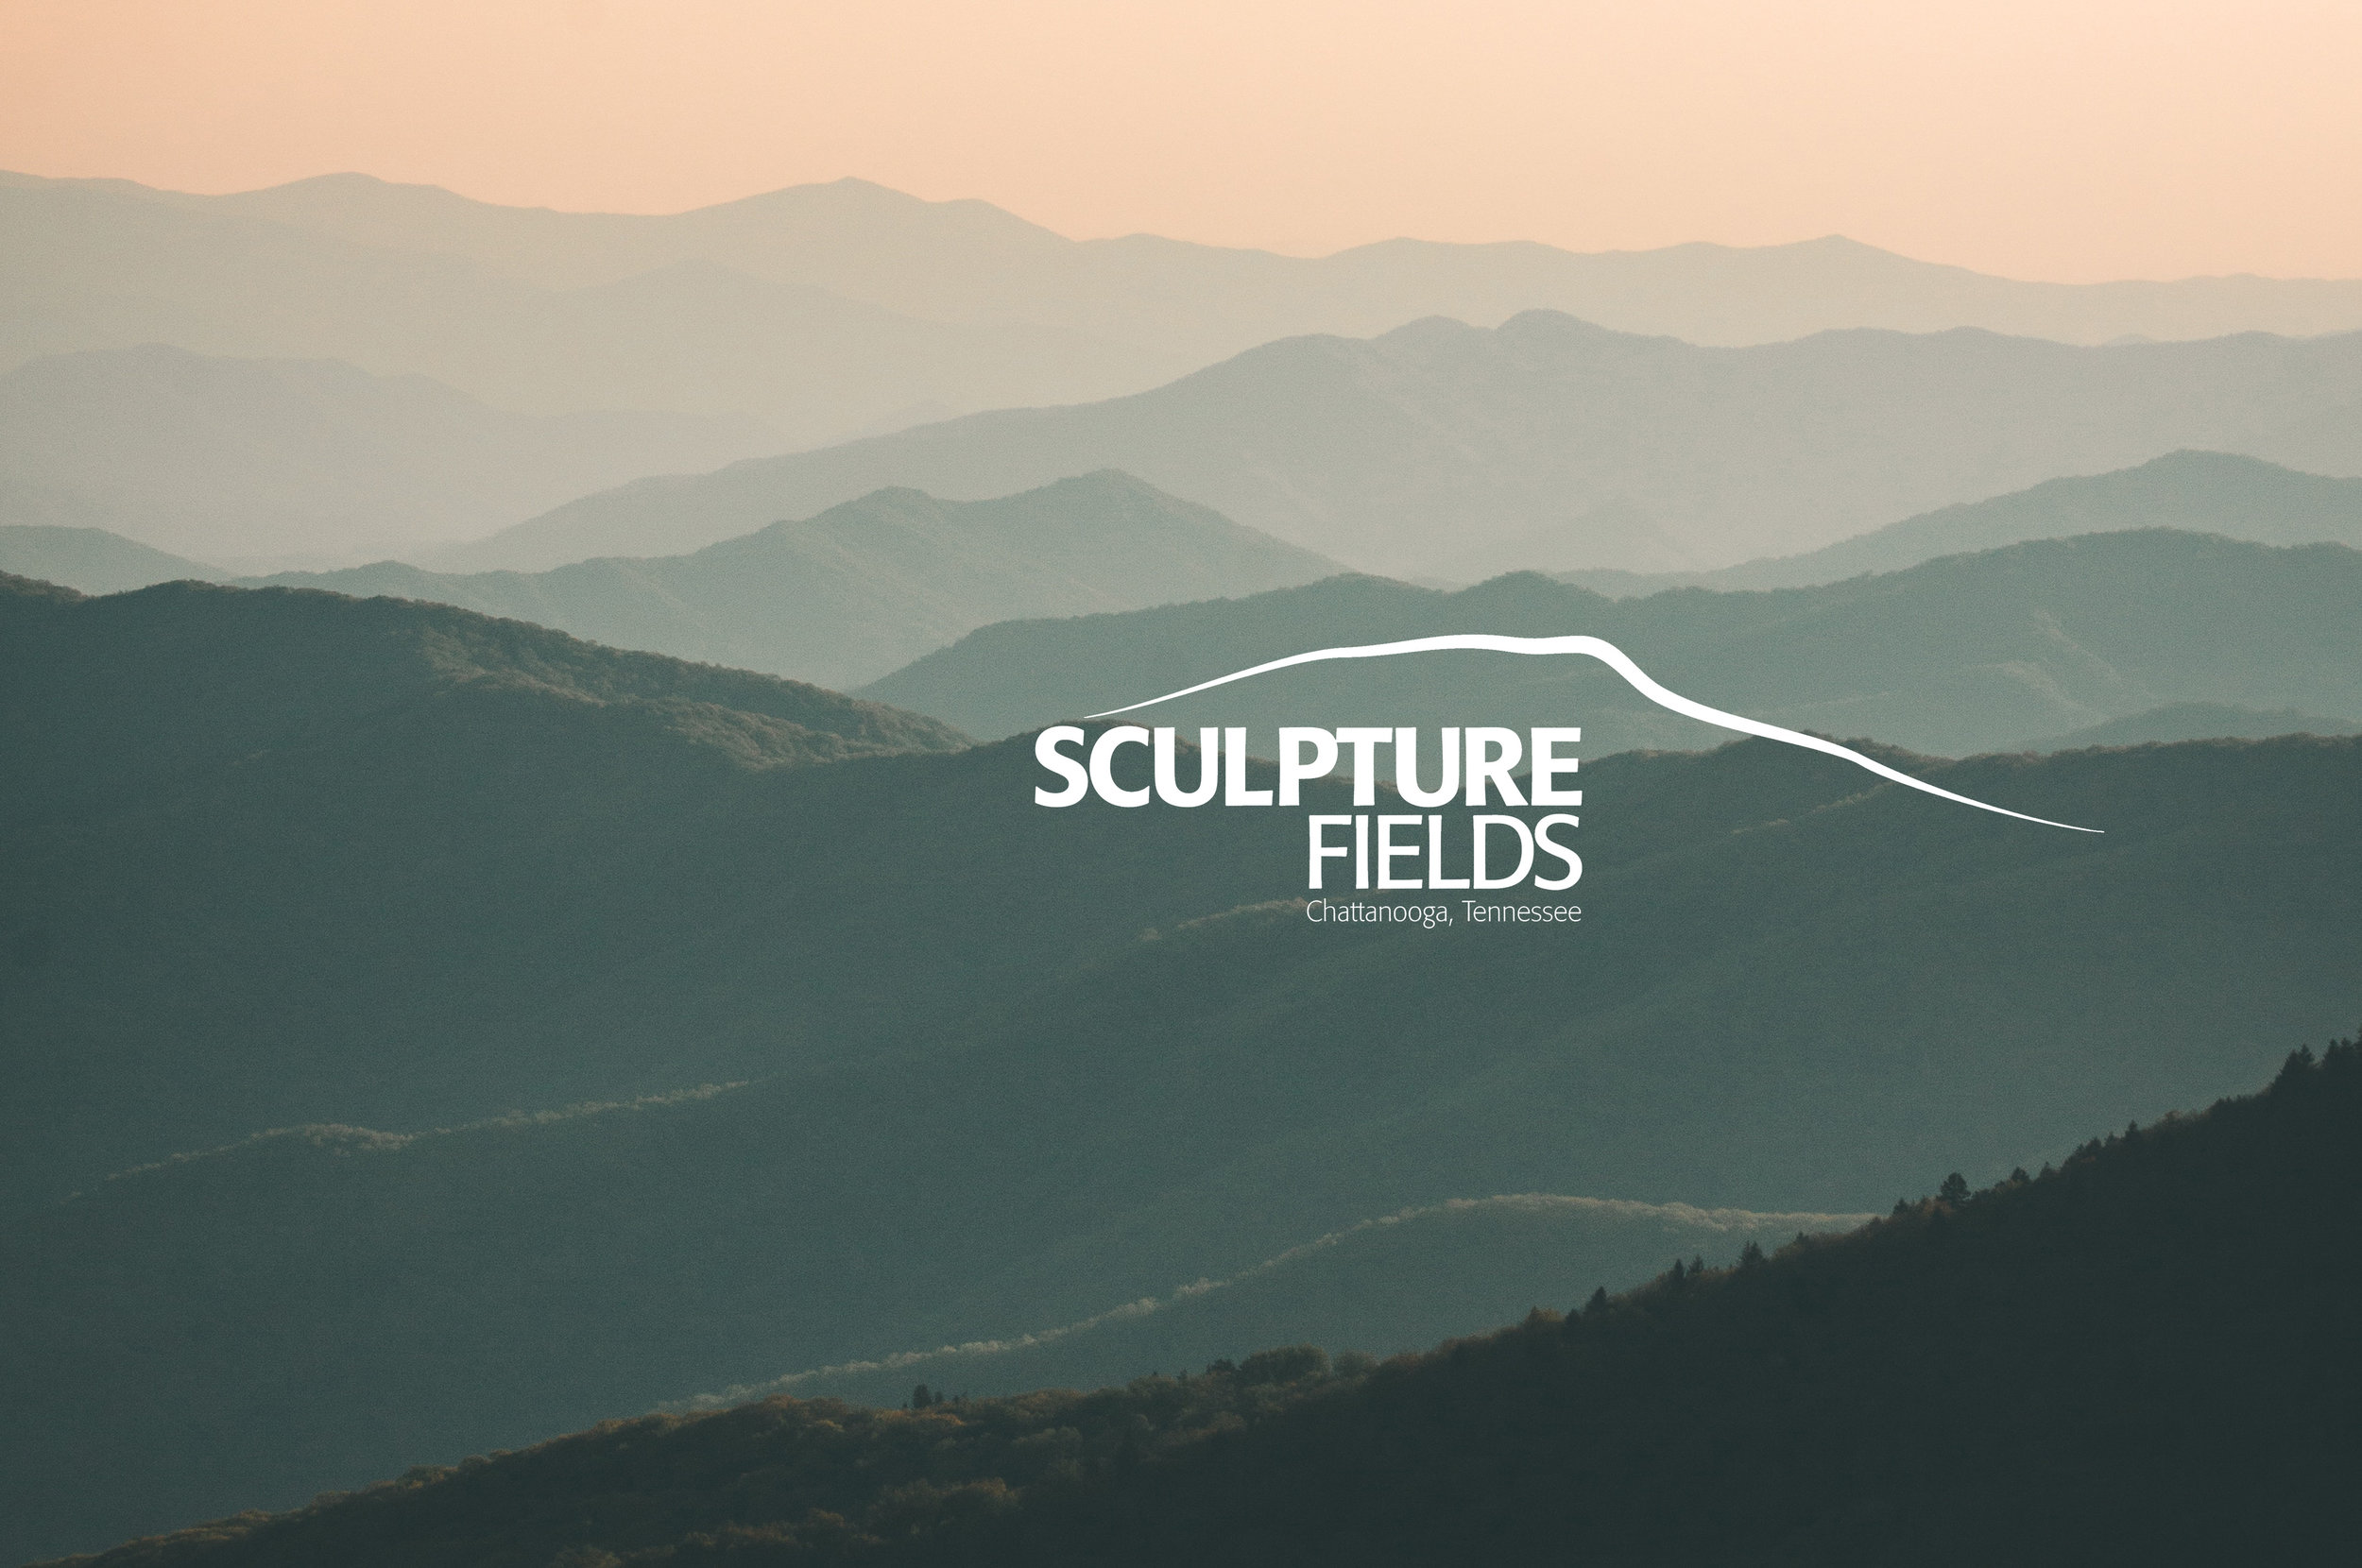 Location for the Hunt - The Sculpture Fields at Montague Park:1800 Polk St, Chattanooga, TN 37408